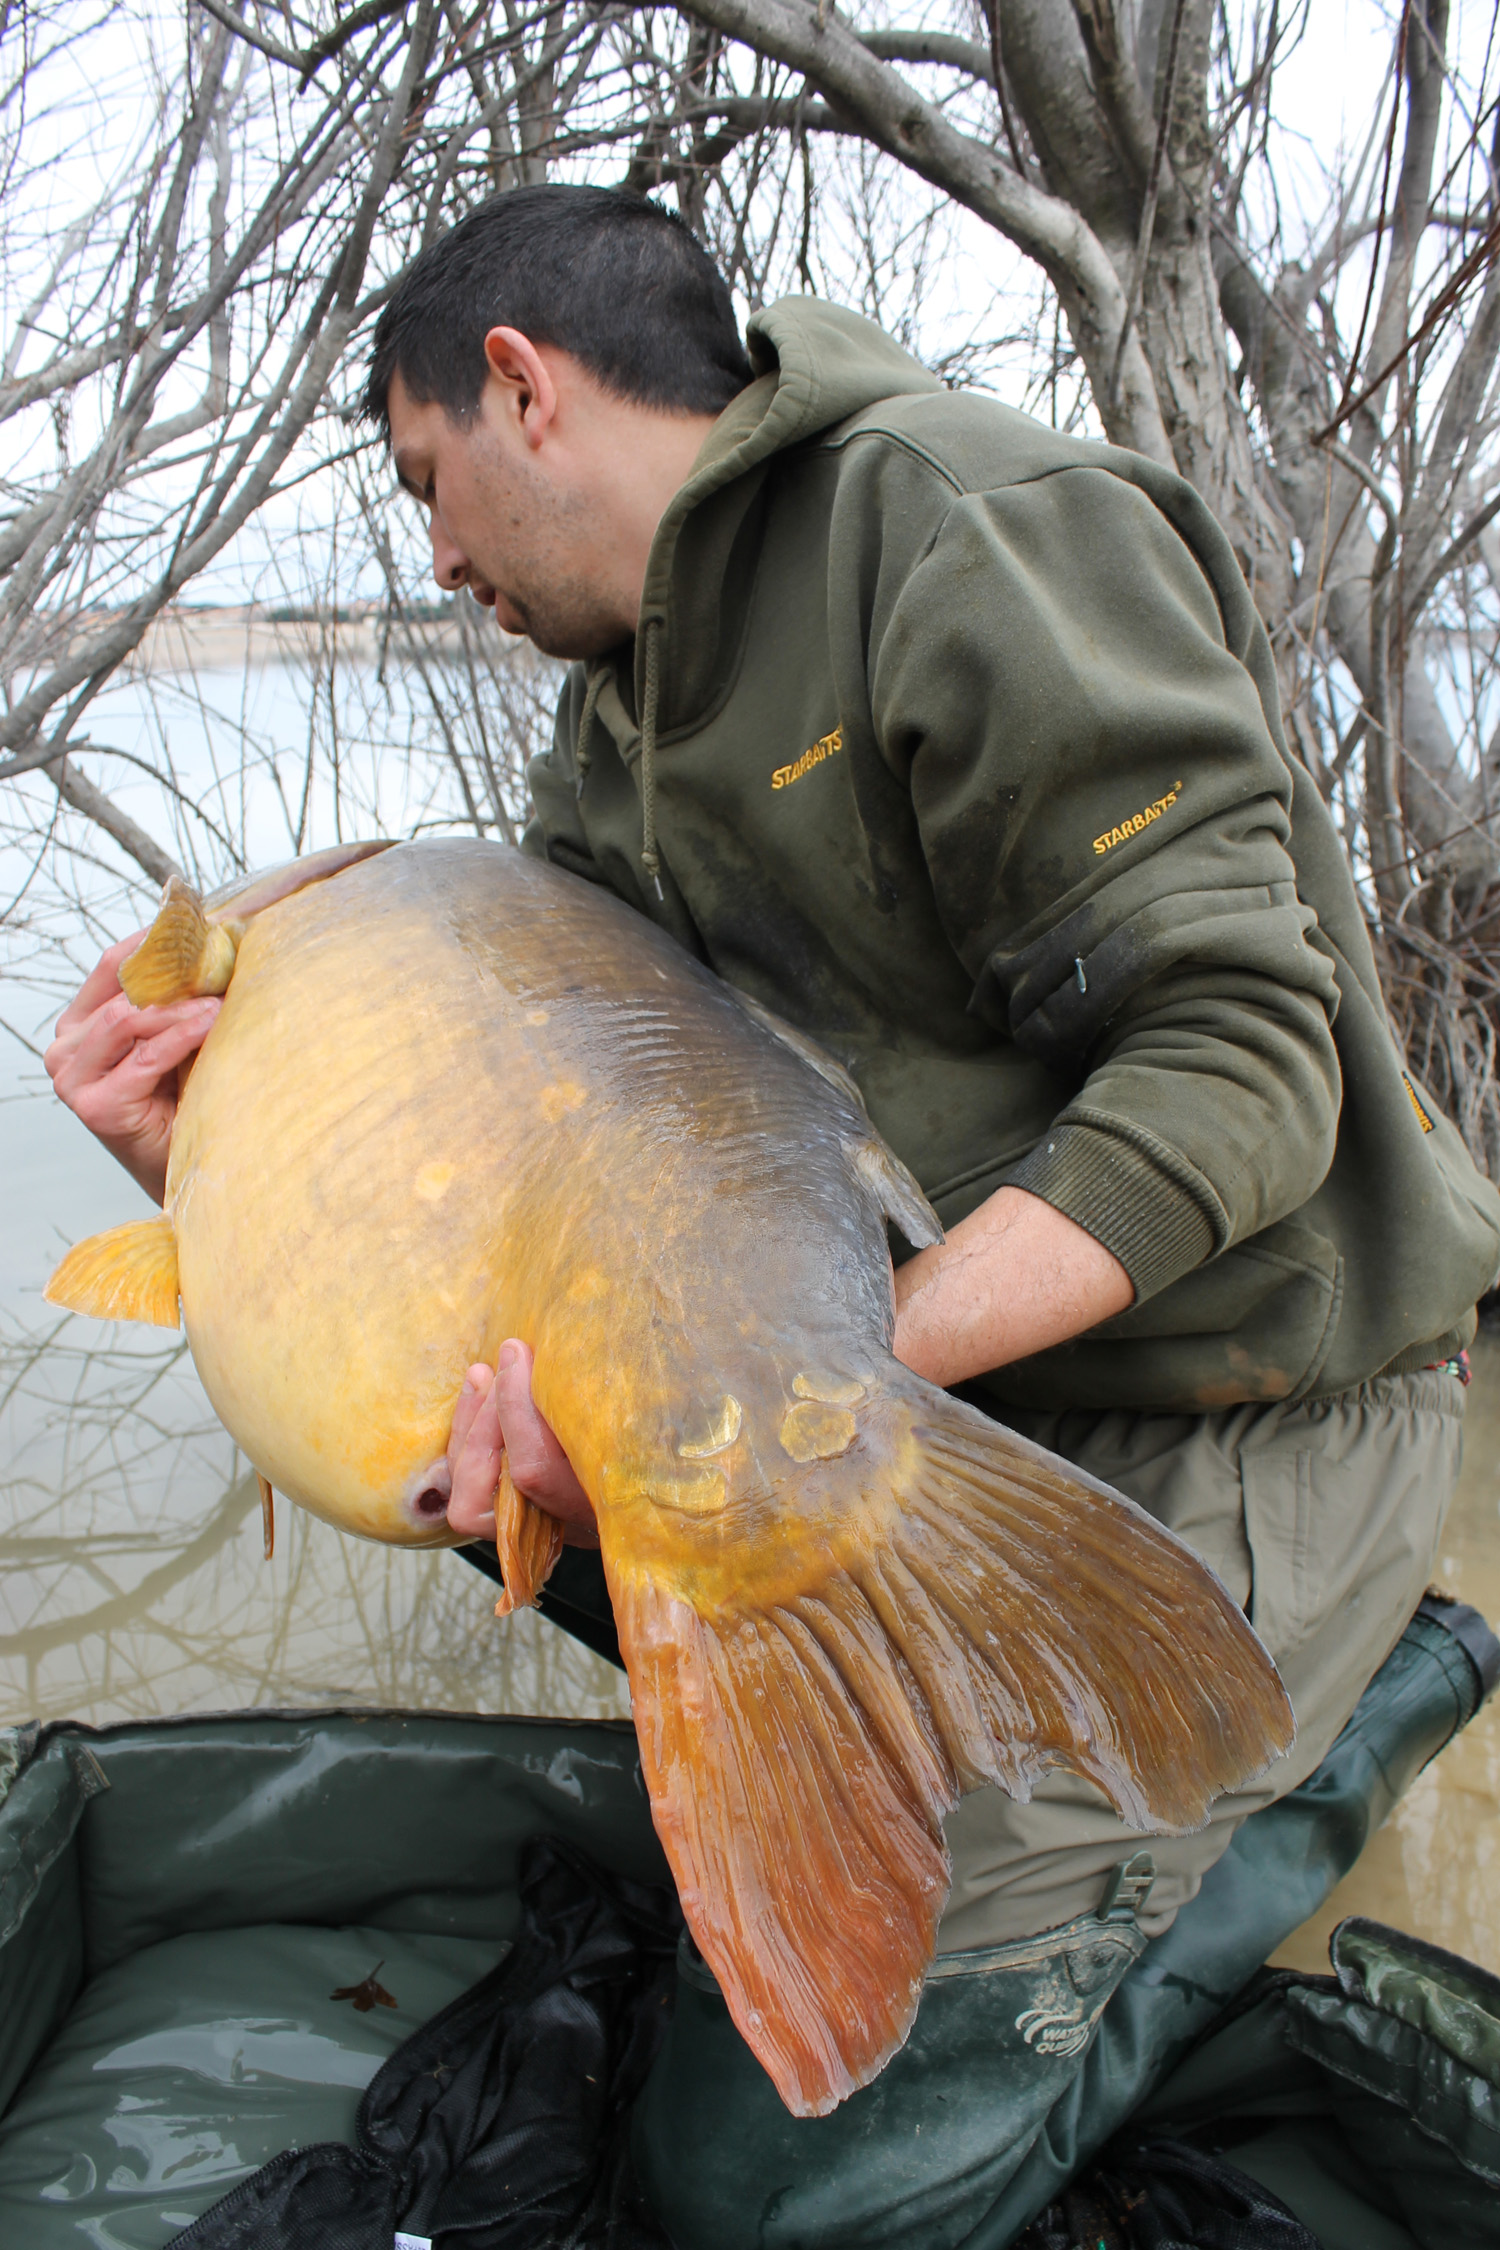 http://starbaits.com/fichiers/images/team/gallery/DUCERE_Cedric/22-DUCERE-CEDRIC.JPG